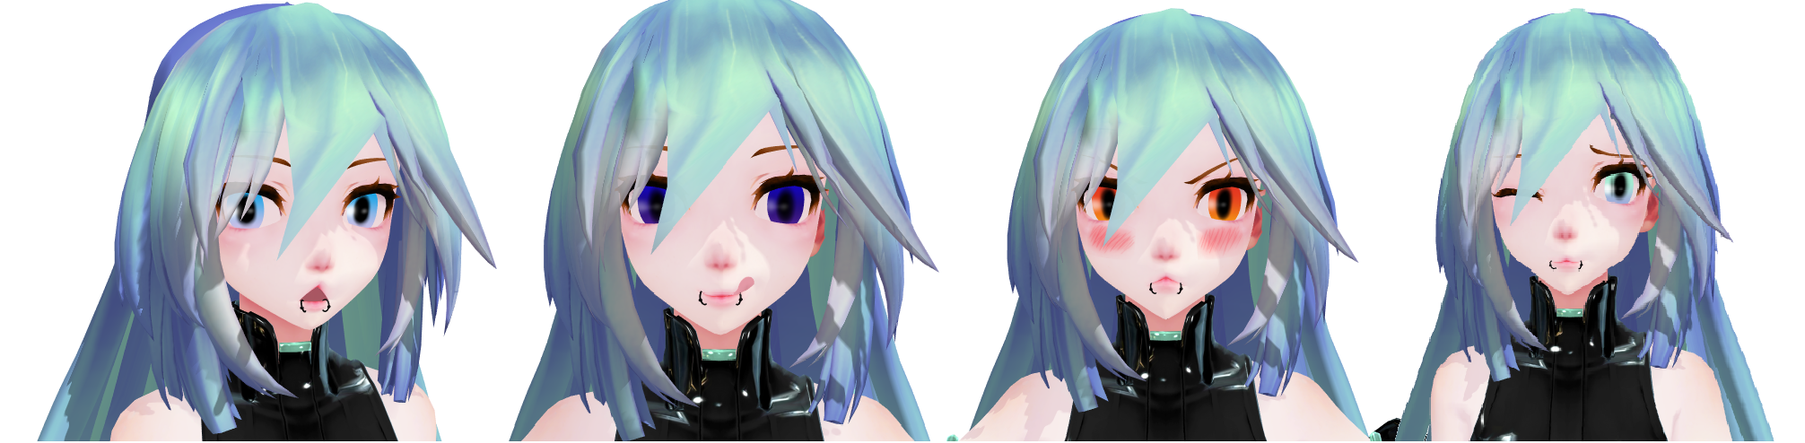 MMD Two colored Eyes DL by Moonlight136866draws